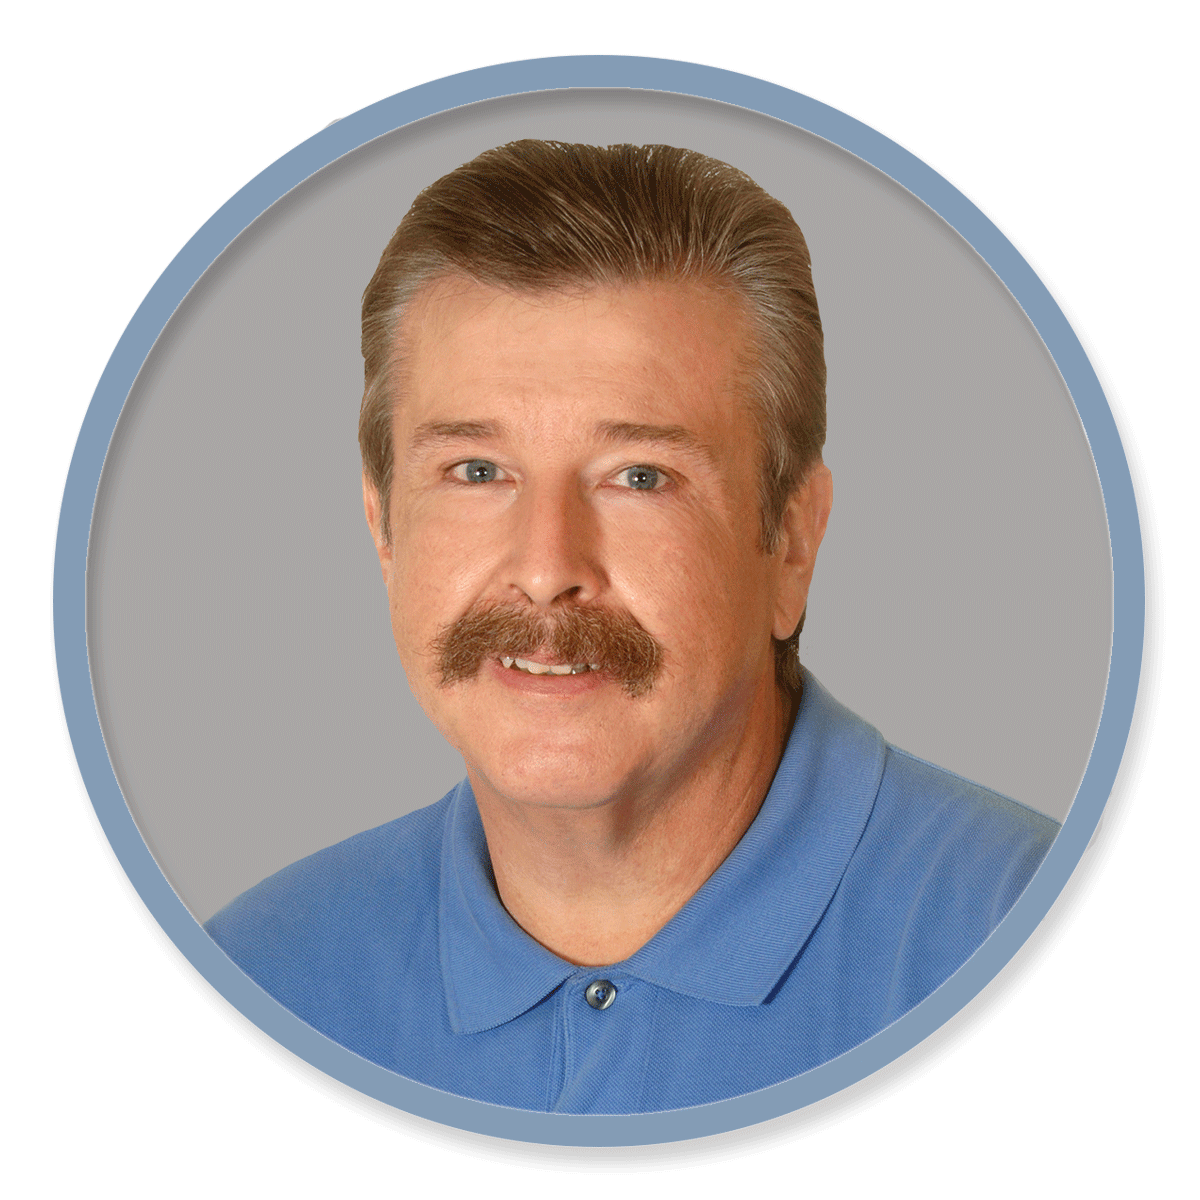 An image of provider Stephen Beckett, DDS | Dentistry